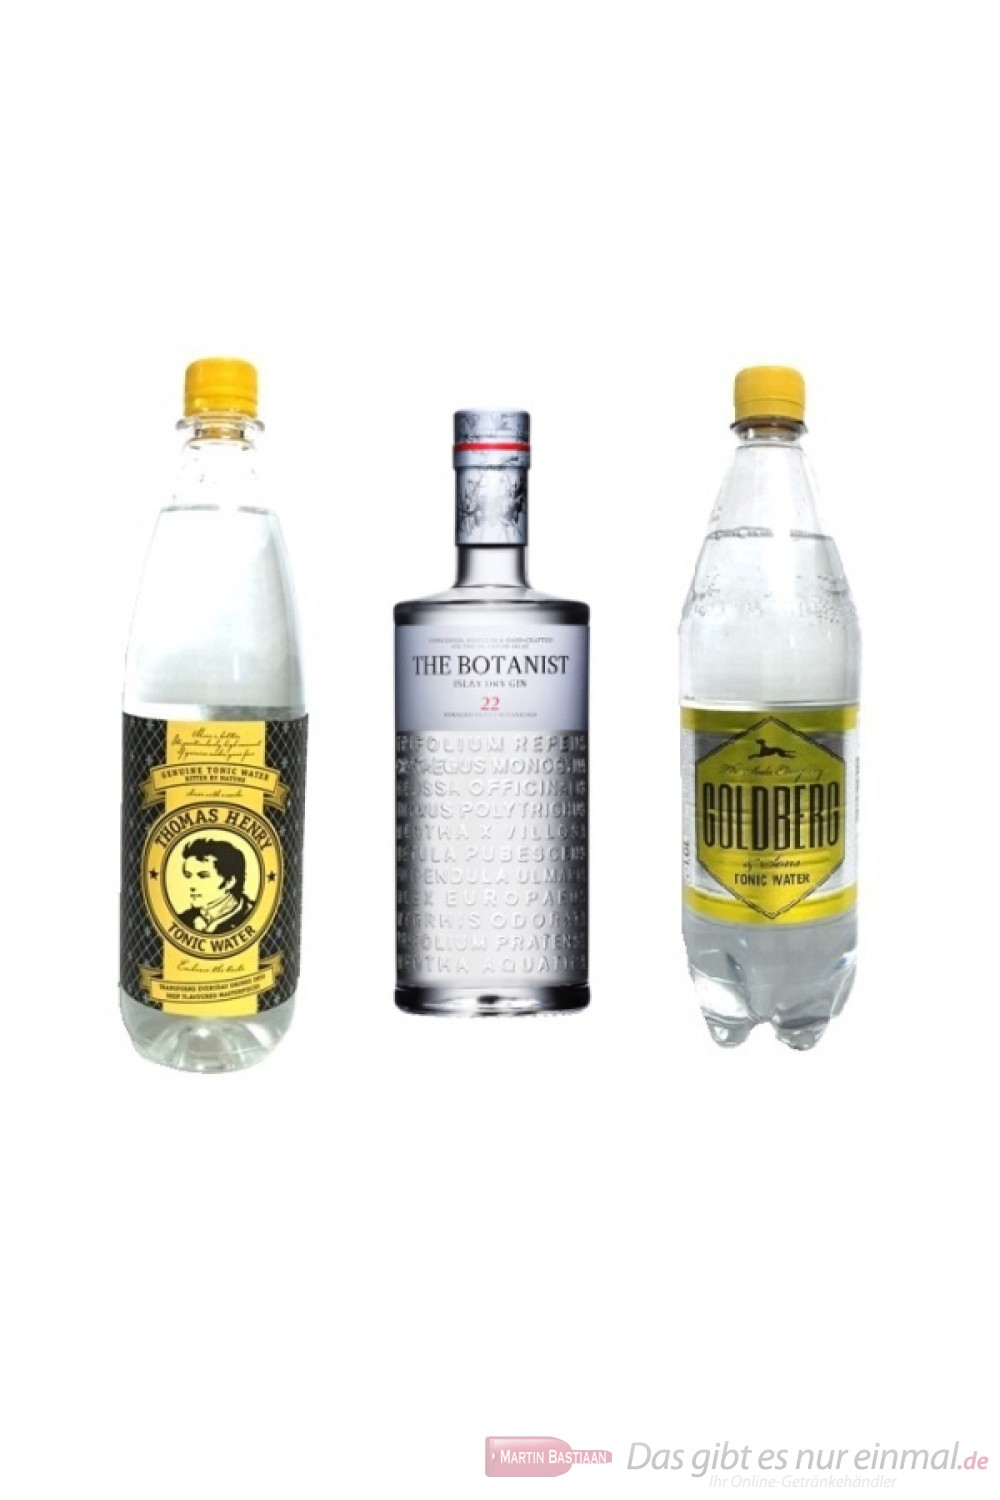 The Botanist Tonic Water Max Pack